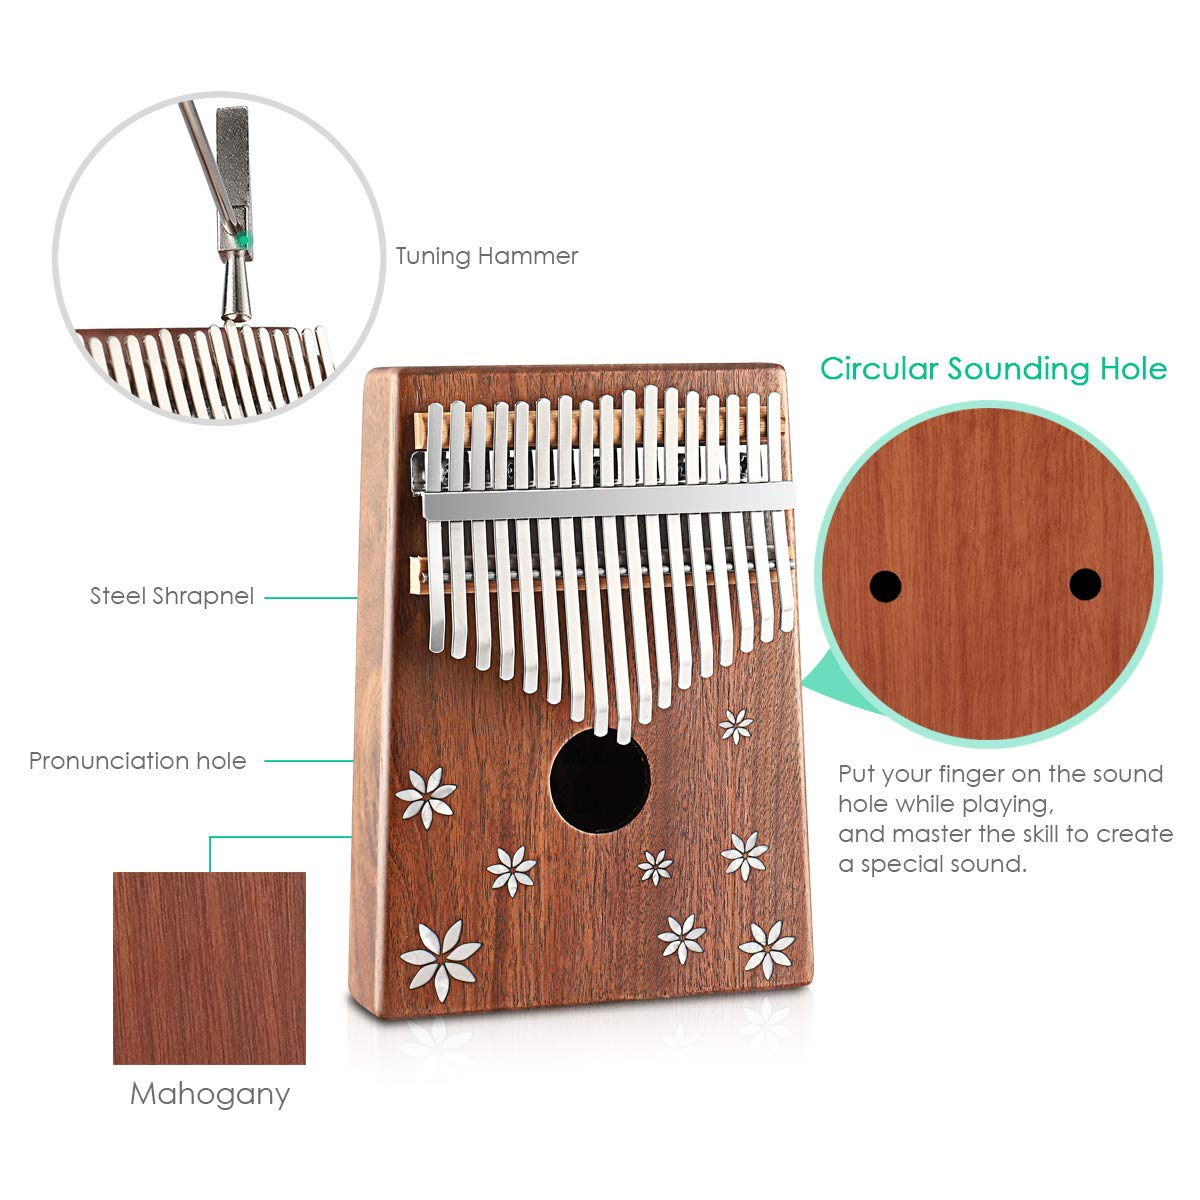 Kalimba 17 Key Thumb Piano Finger Piano Mahogany Wood Body Mbira 17 Tone Musical Instrument for Kids Gift Beginner Musician with Music Book Tune Hammer and Bag by MIFXIN (Image #2)